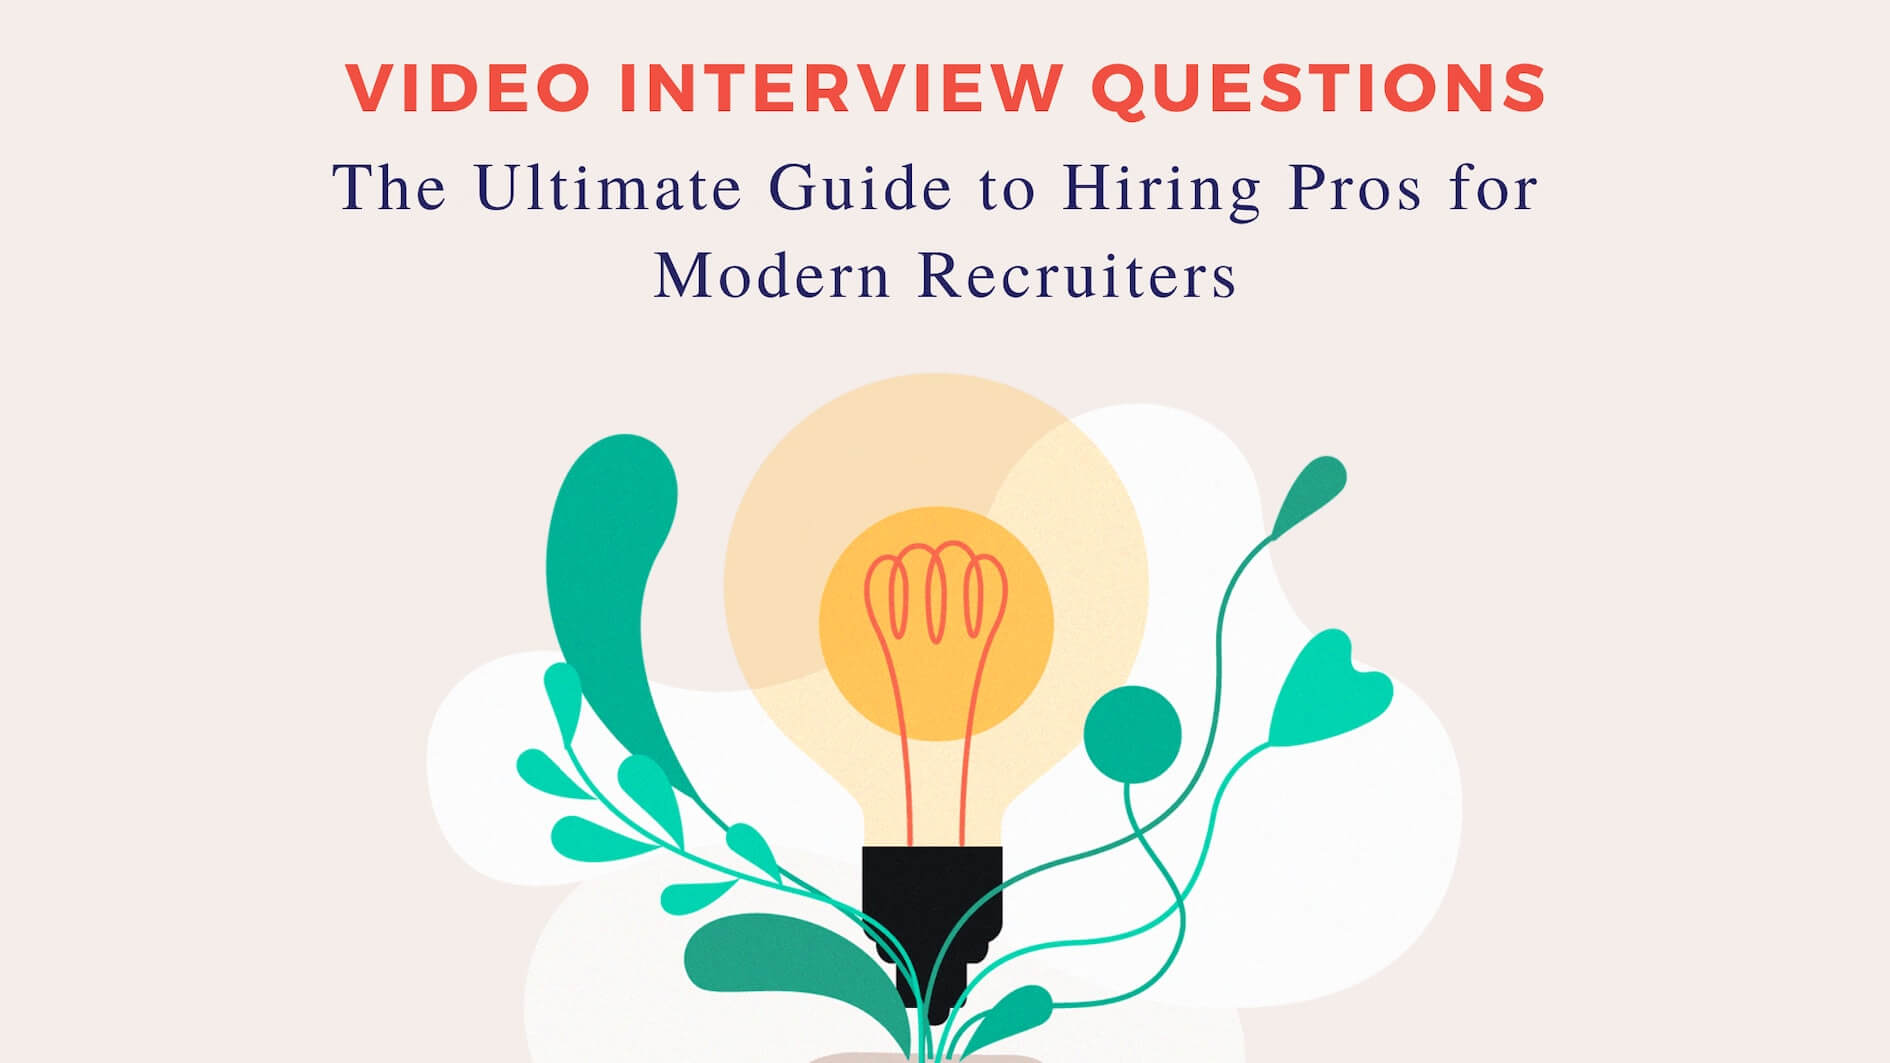 Video Interview Questions: The Ultimate Guide to Hiring Pros for Modern Recruiters